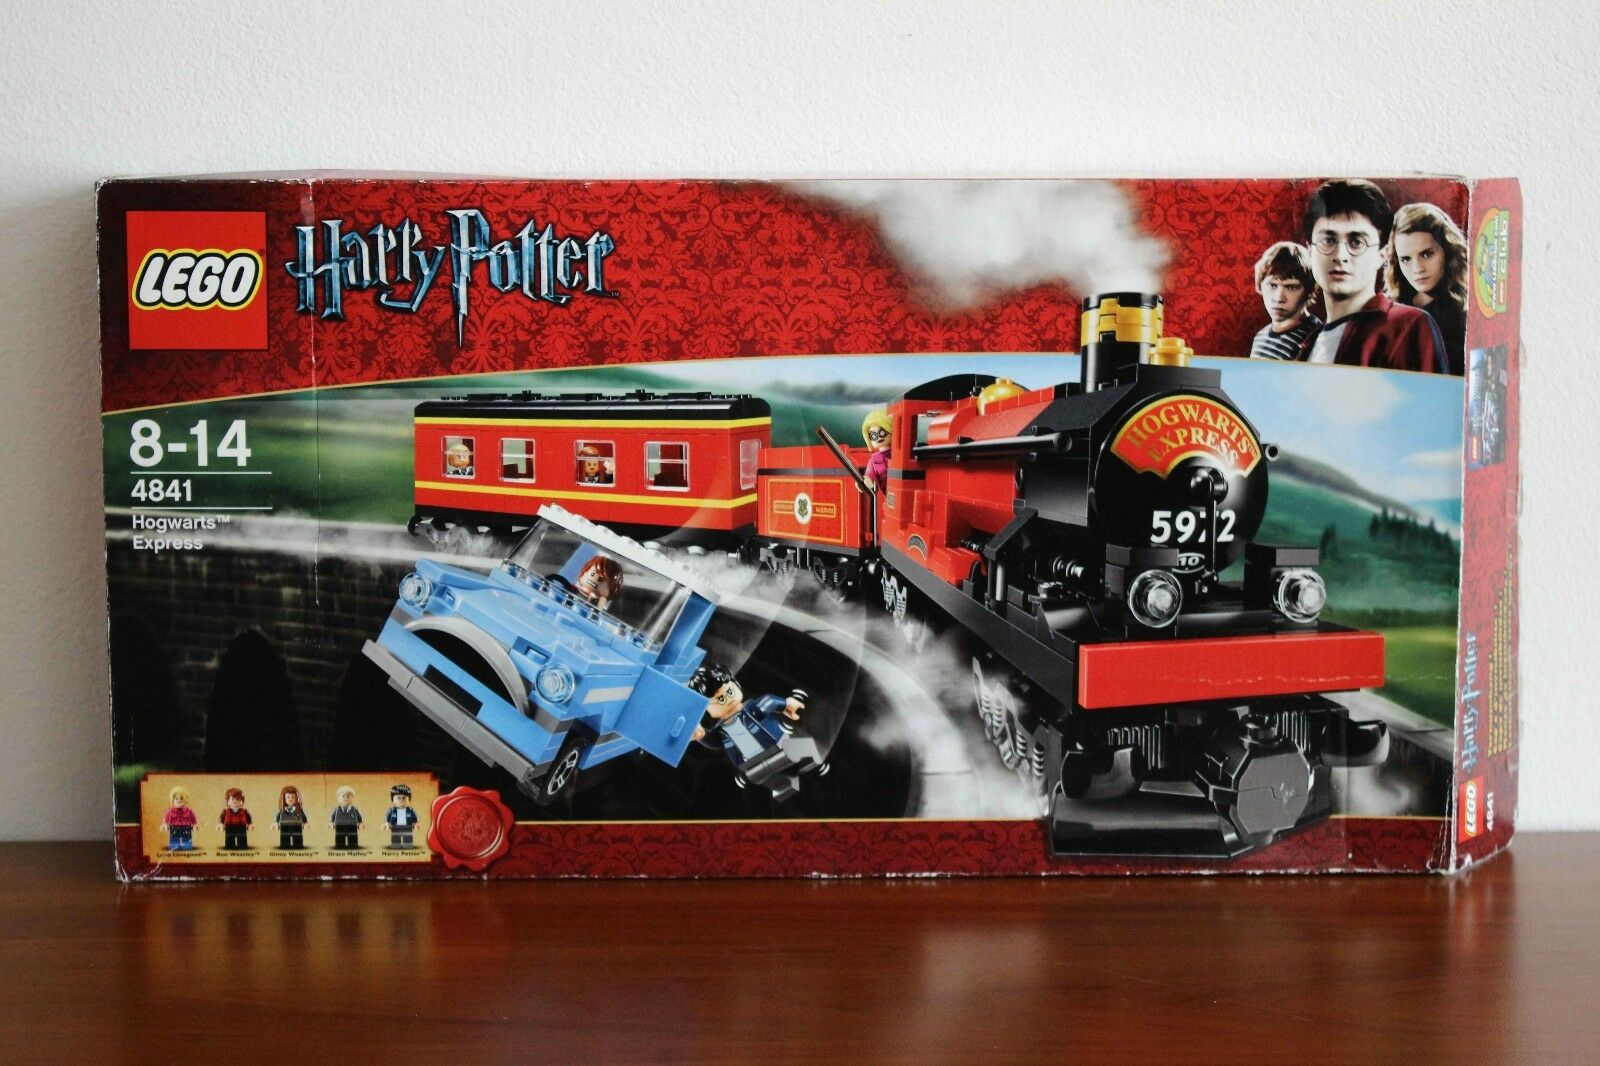 Lego Harry Potter Set 4841-1 Hogwarts Express 100% cmpl. + instr. and box